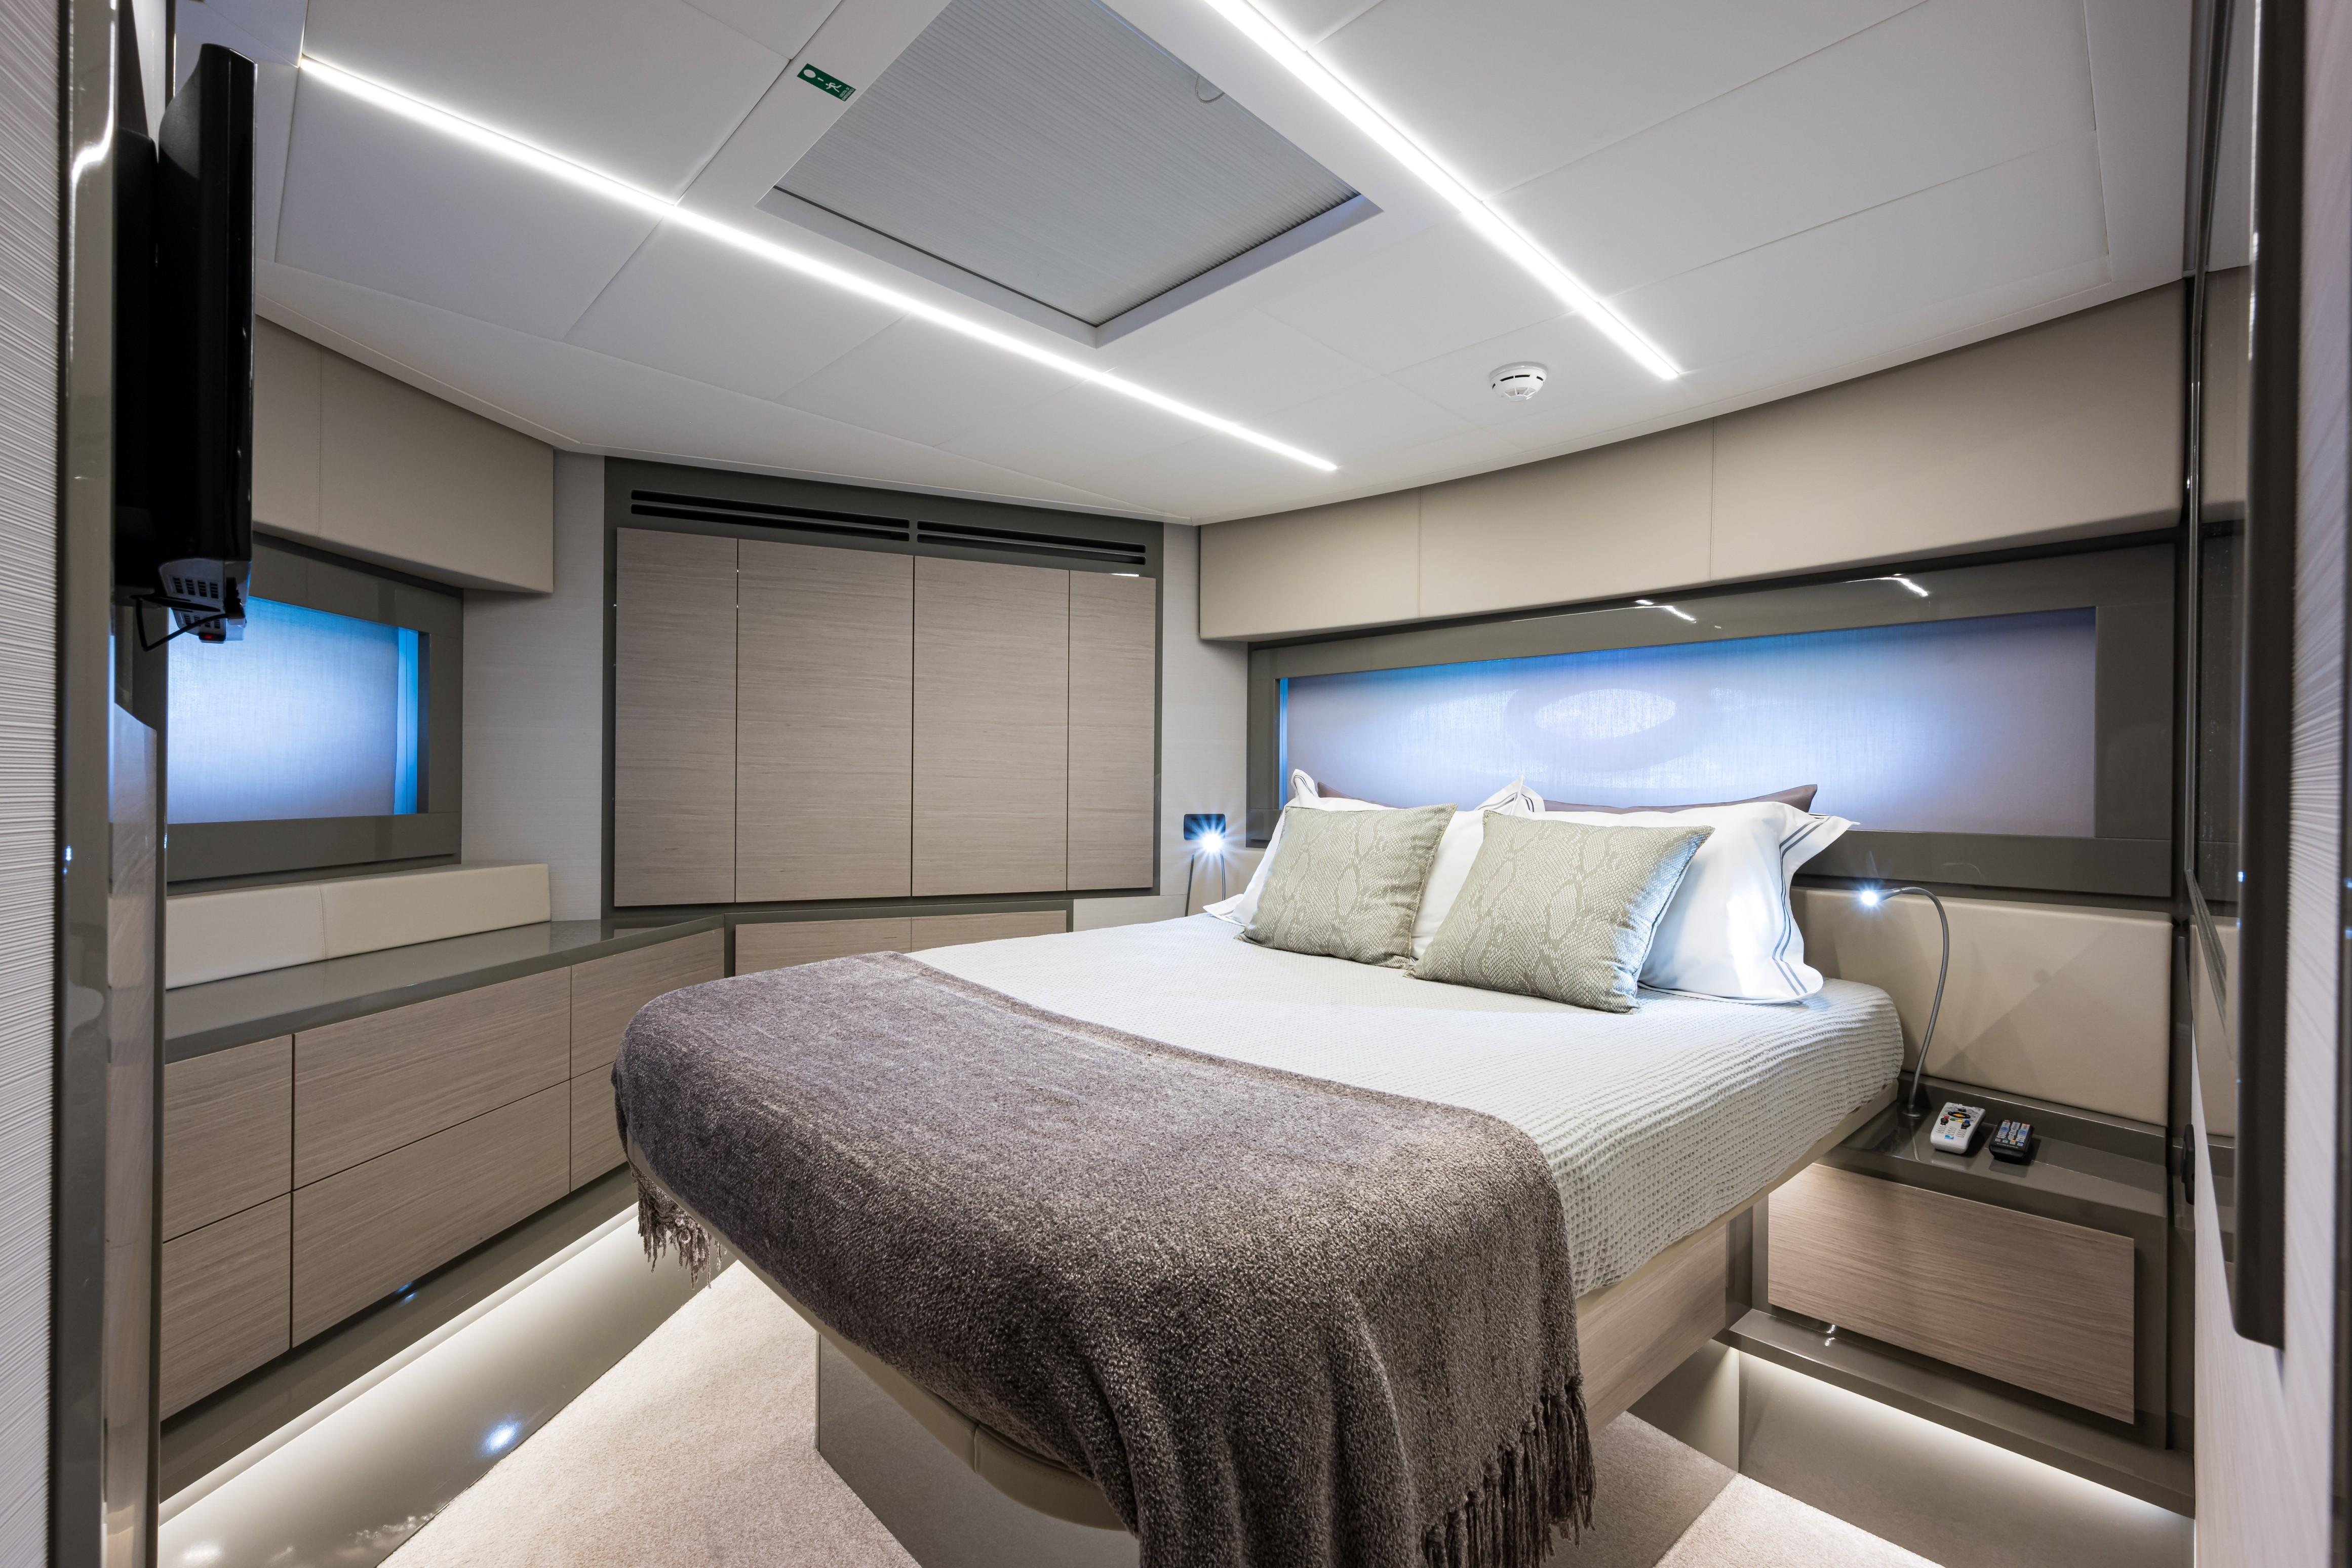 2016 Pershing 62 - Forward Stateroom